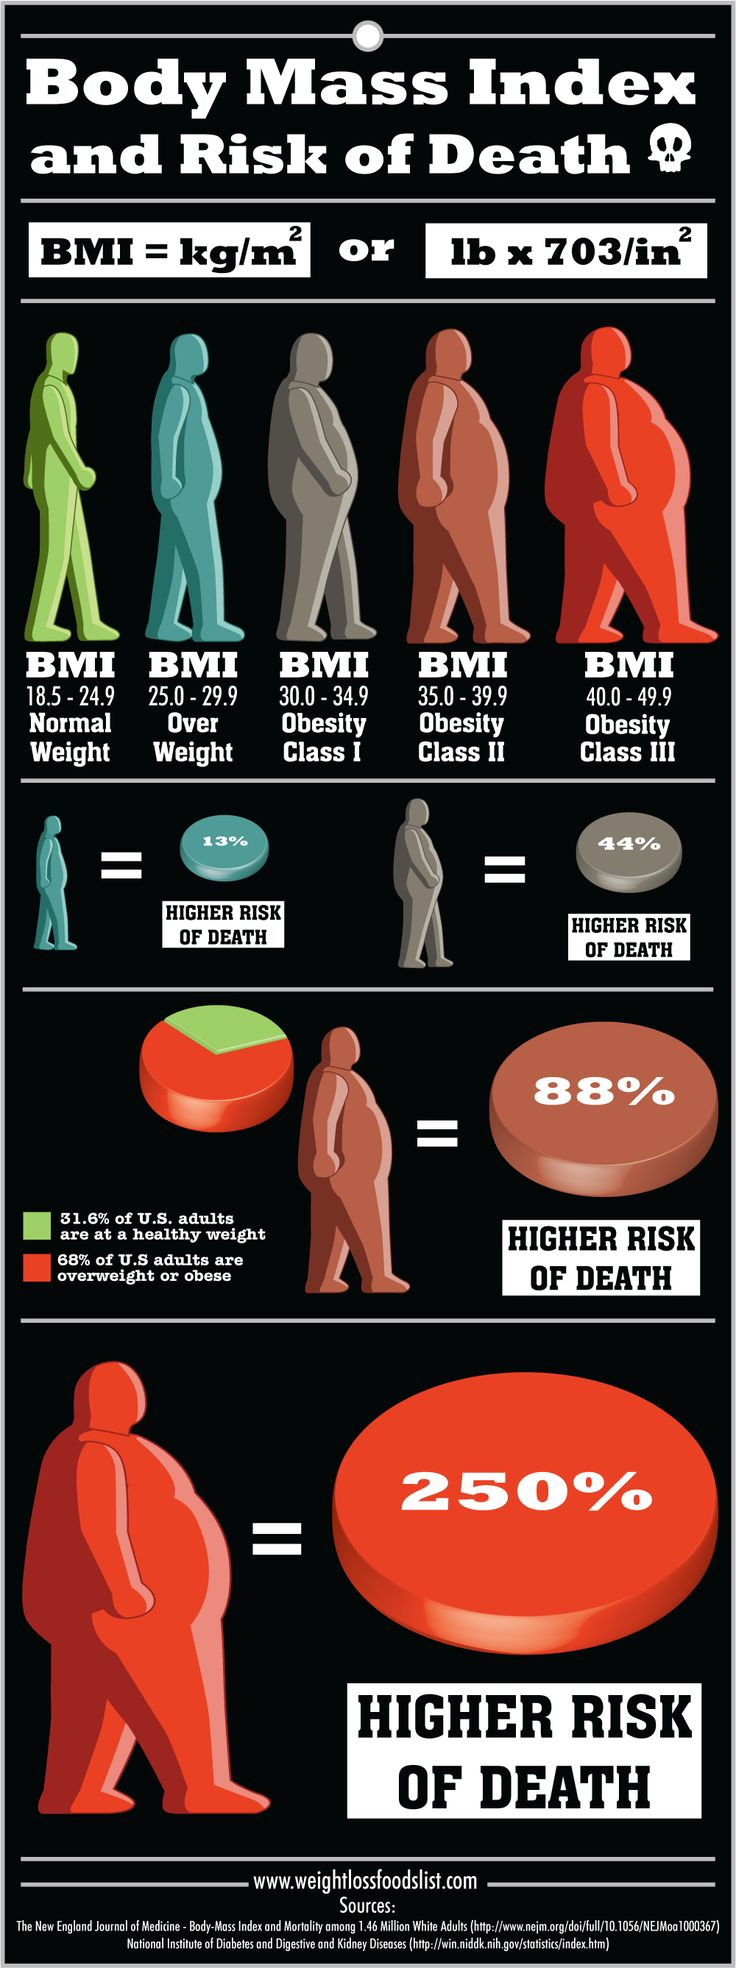 Body Mass Index (BMI) and Risk of Death Infographic